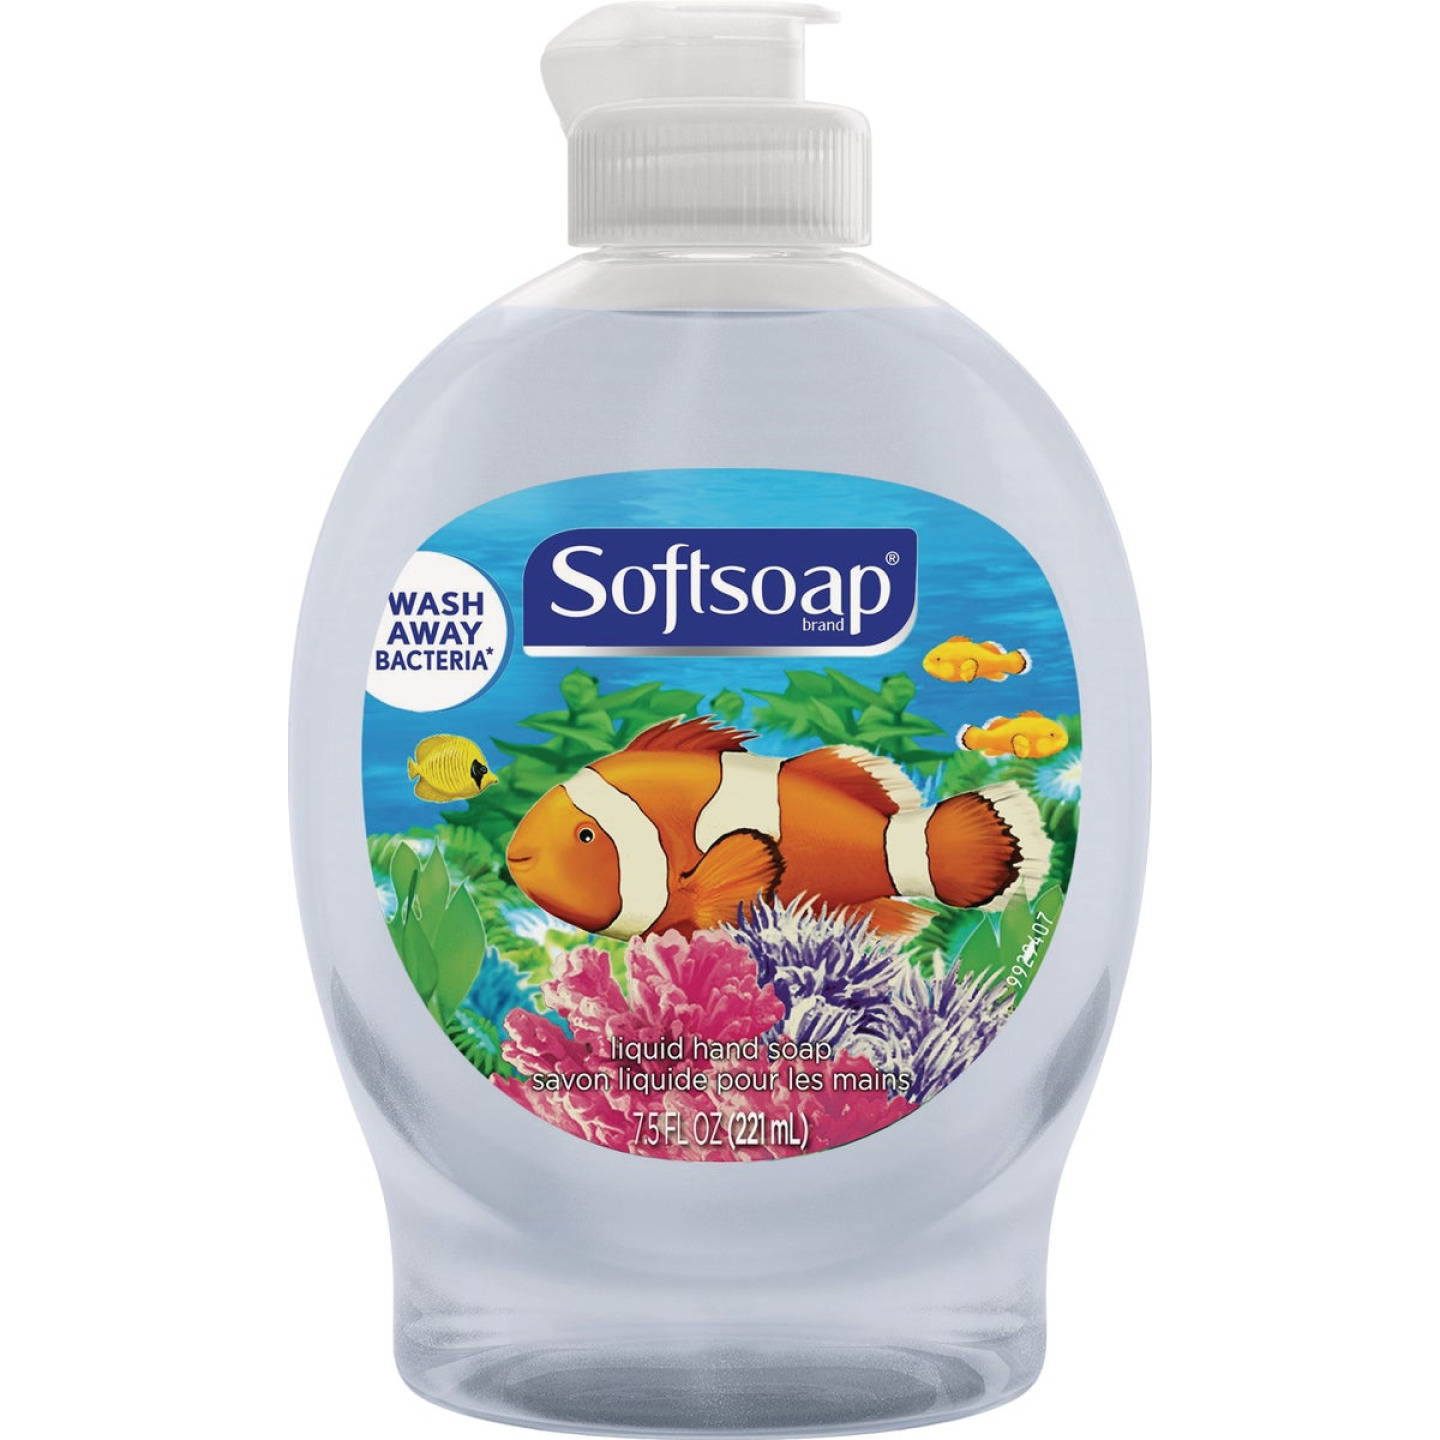 Softsoap 7.5 Oz. Aquarium Liquid Hand Soap Image 1